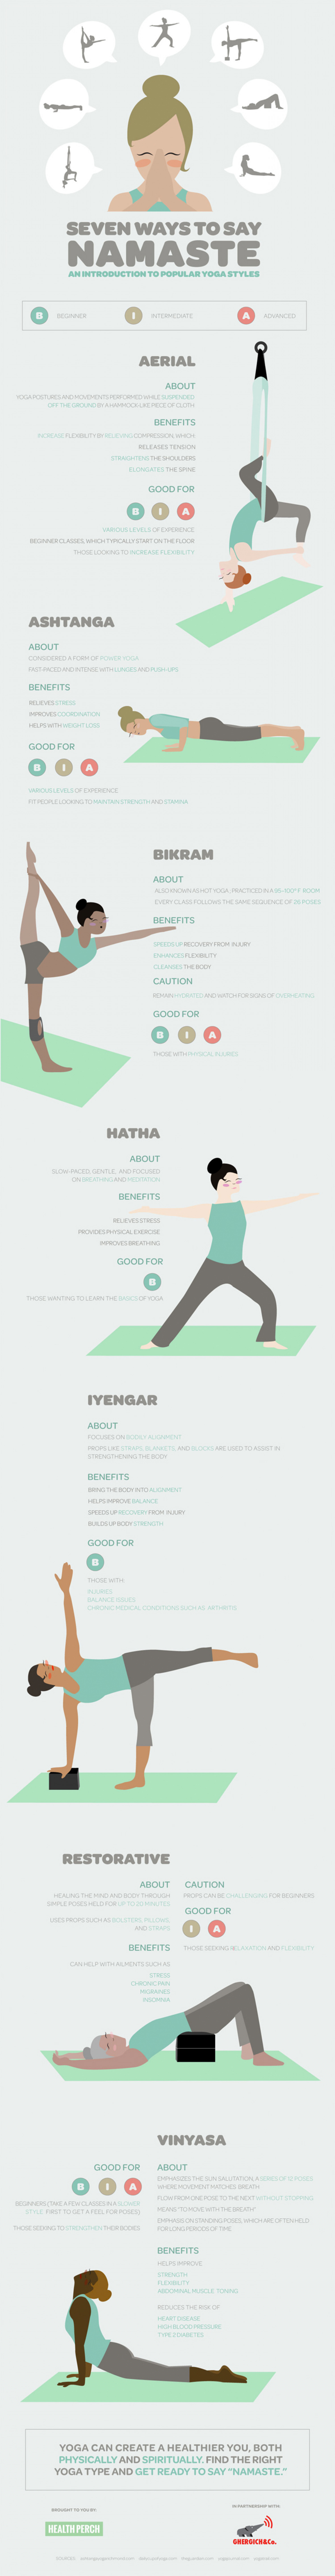 Seven Ways to Say Namaste: An Introduction to Popular Yoga Styles Infographic